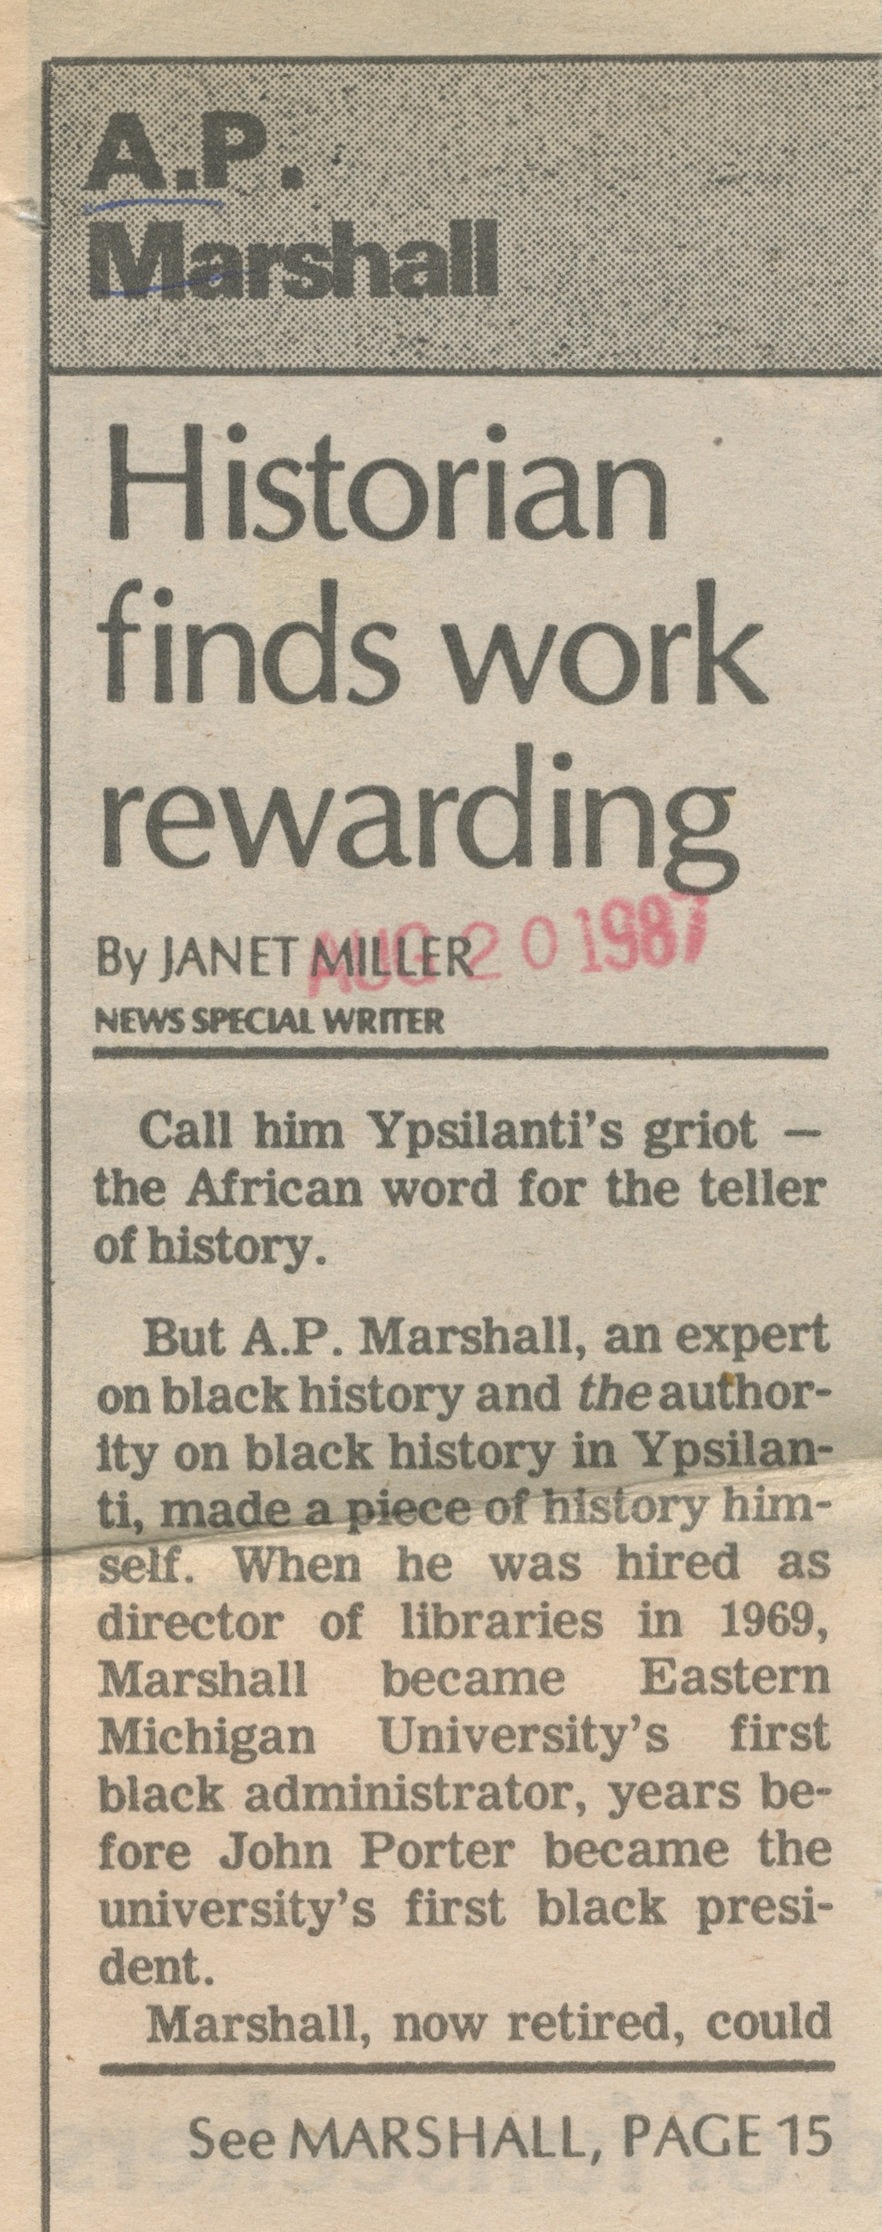 Historian Finds Work Rewarding image